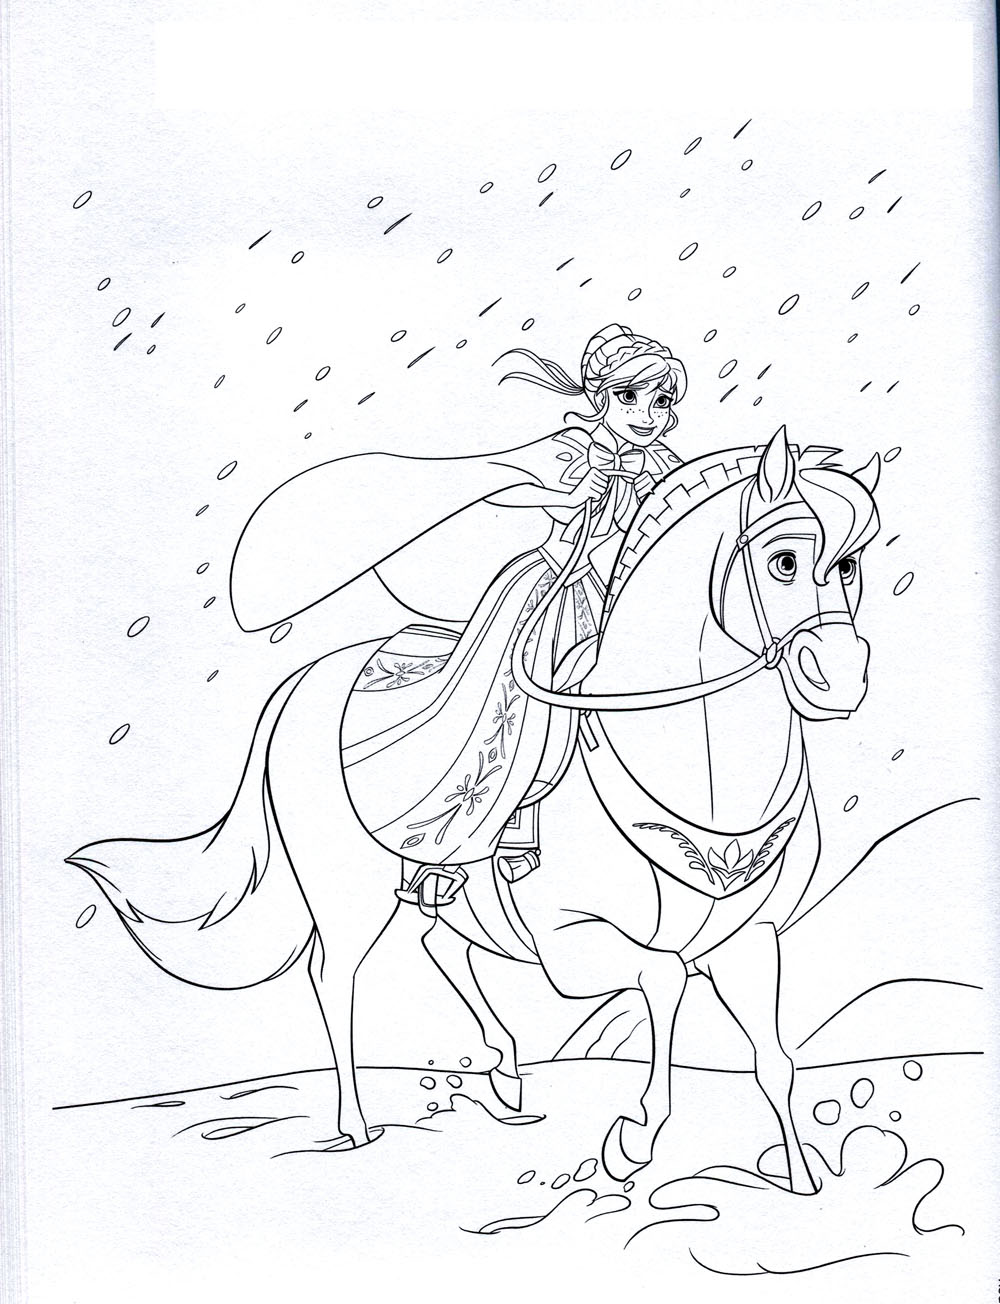 Free Frozen coloring page to print and color, for kids : Anna on horse